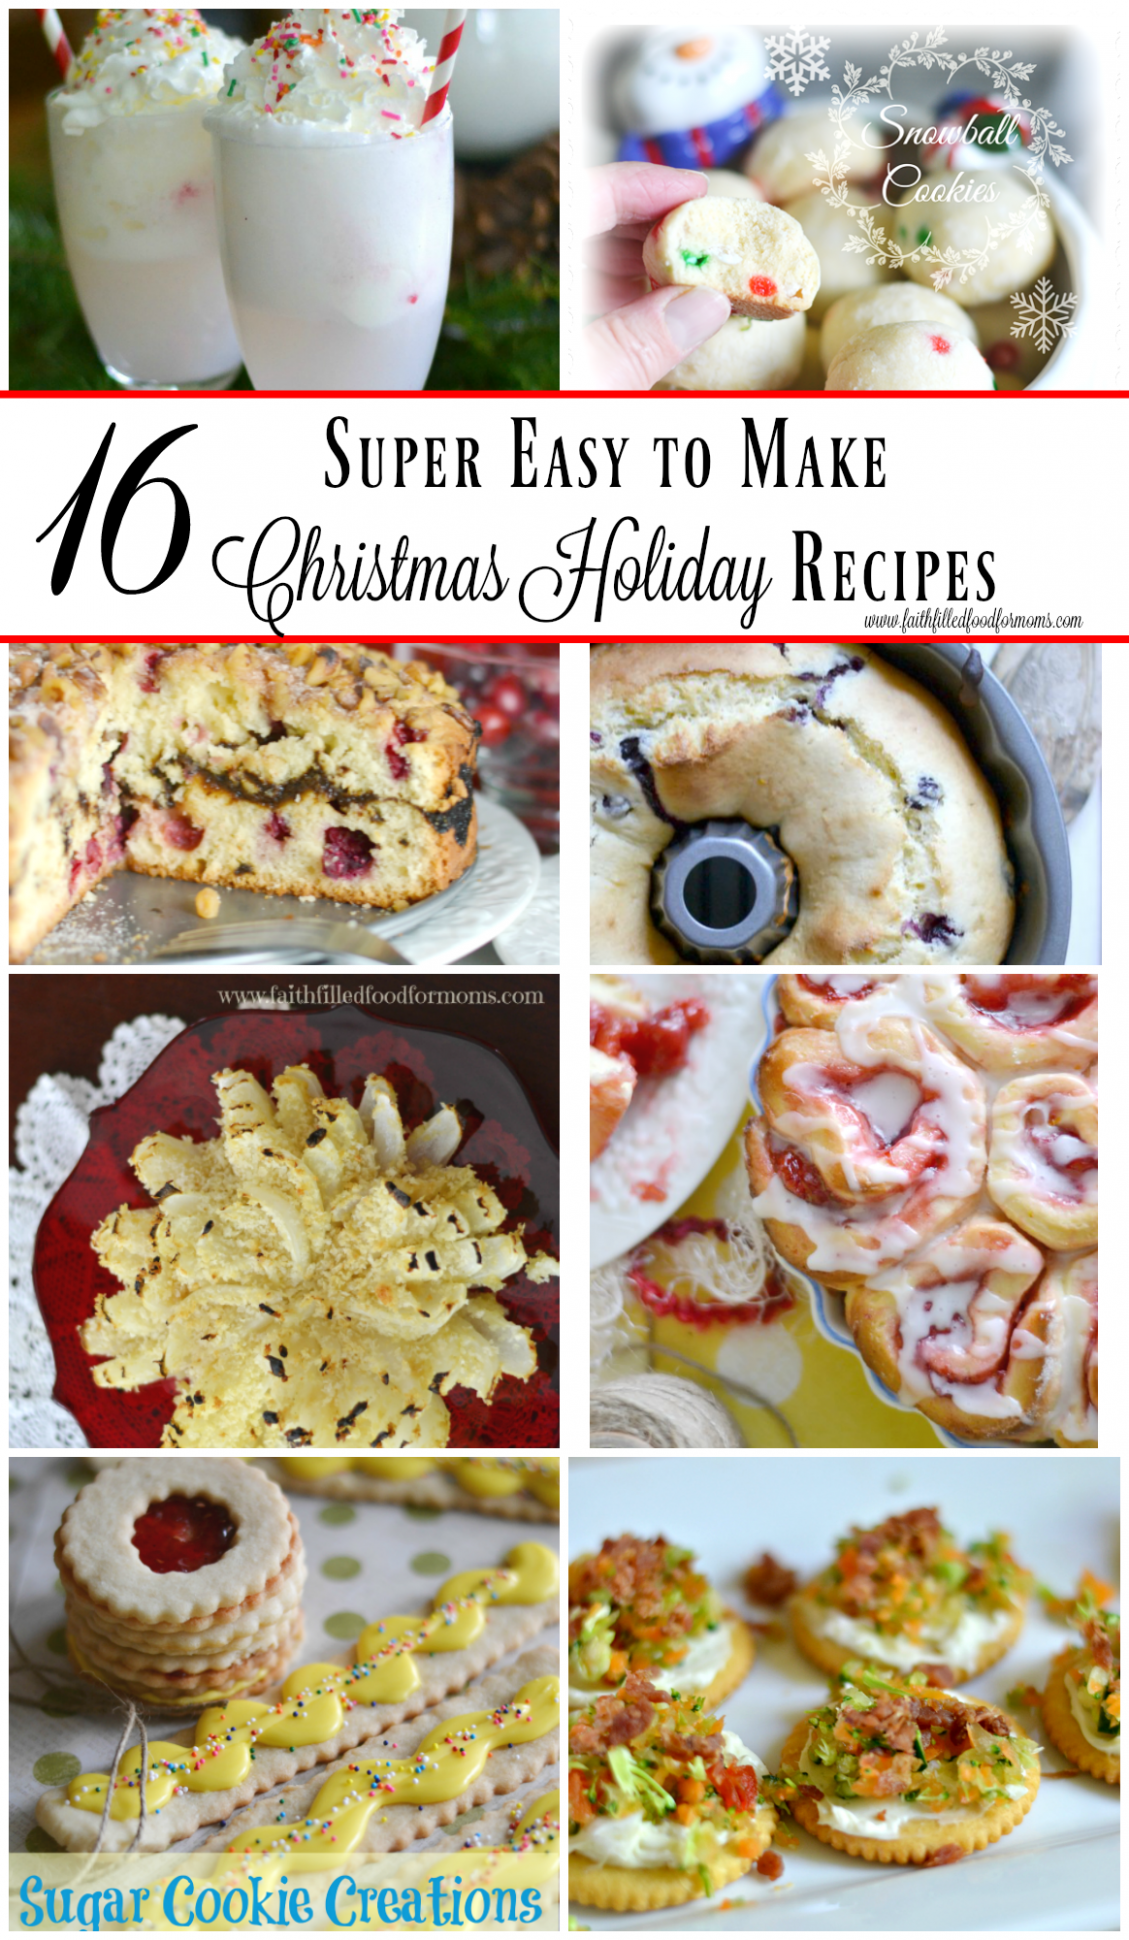 16 Super Easy to Make Christmas Holiday Recipes • Faith ...